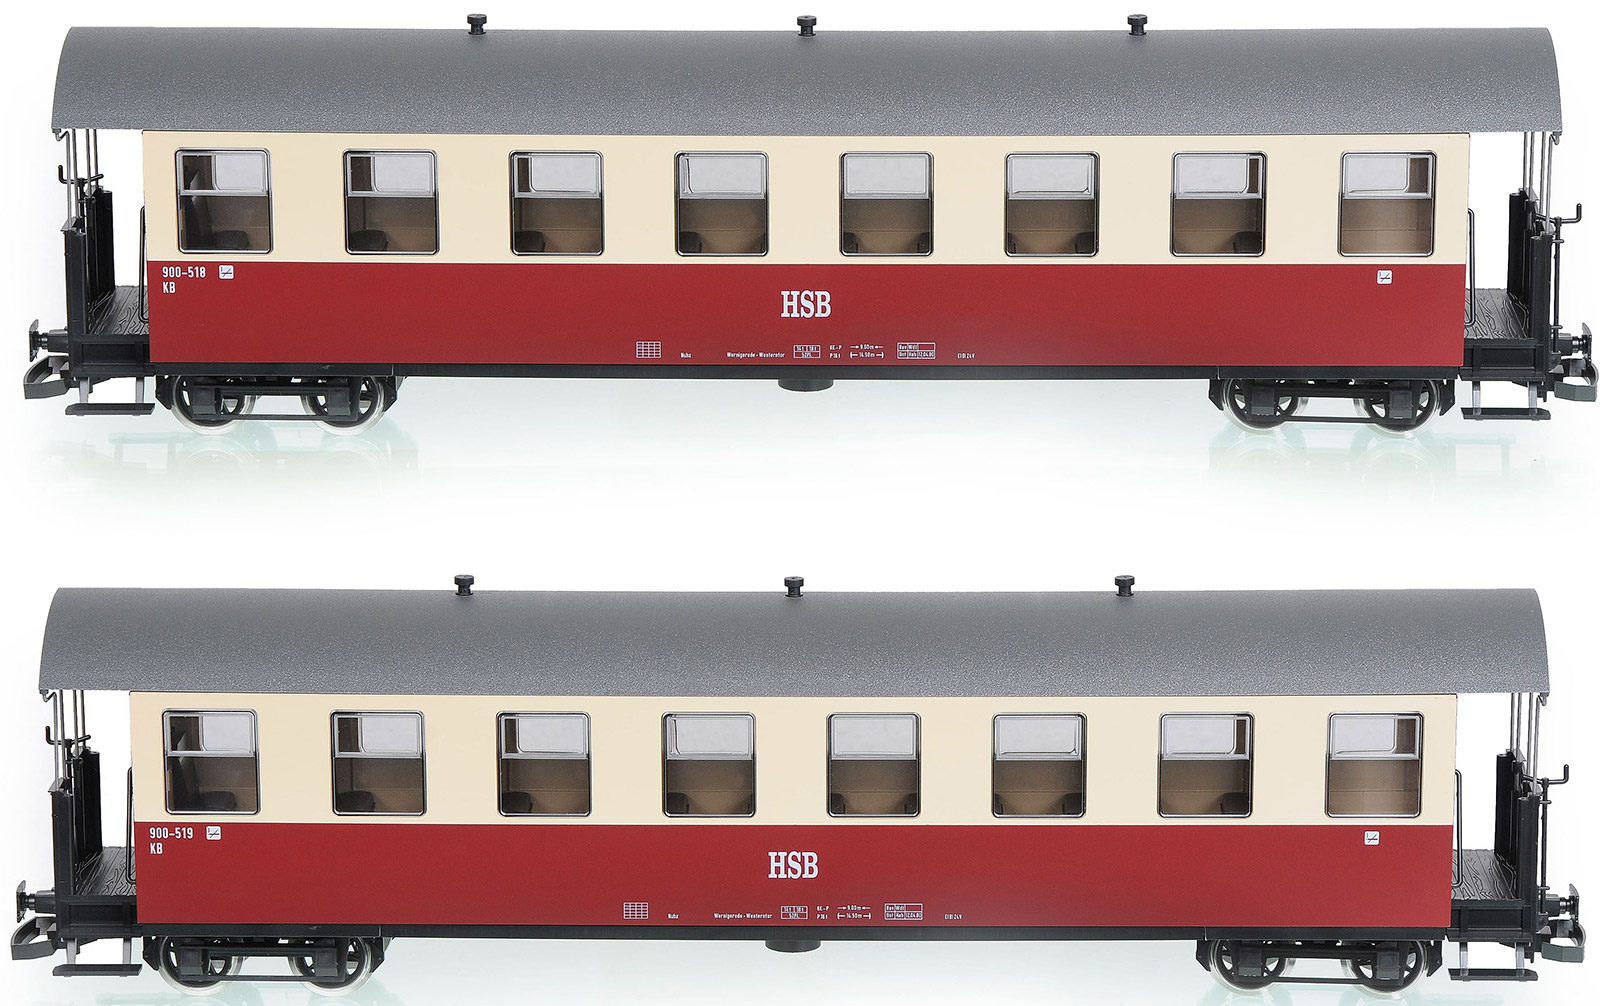 Personenwagen 8 Fenster HSB 2er Set 900-518, 900-519 Train Line 3530751